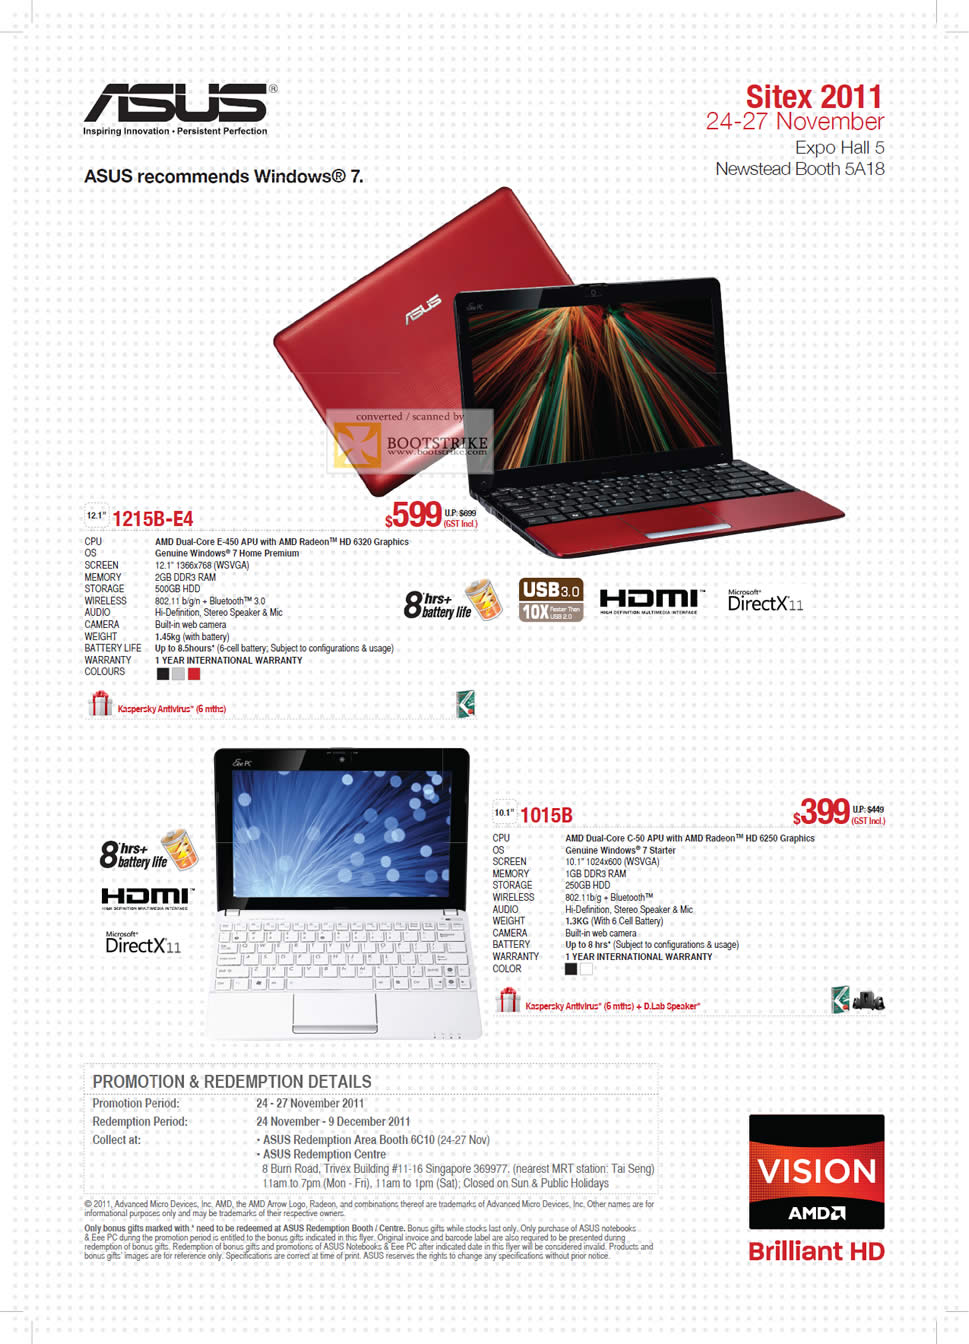 SITEX 2011 price list image brochure of ASUS Notebooks Netbooks 1215B-E4, 1015B